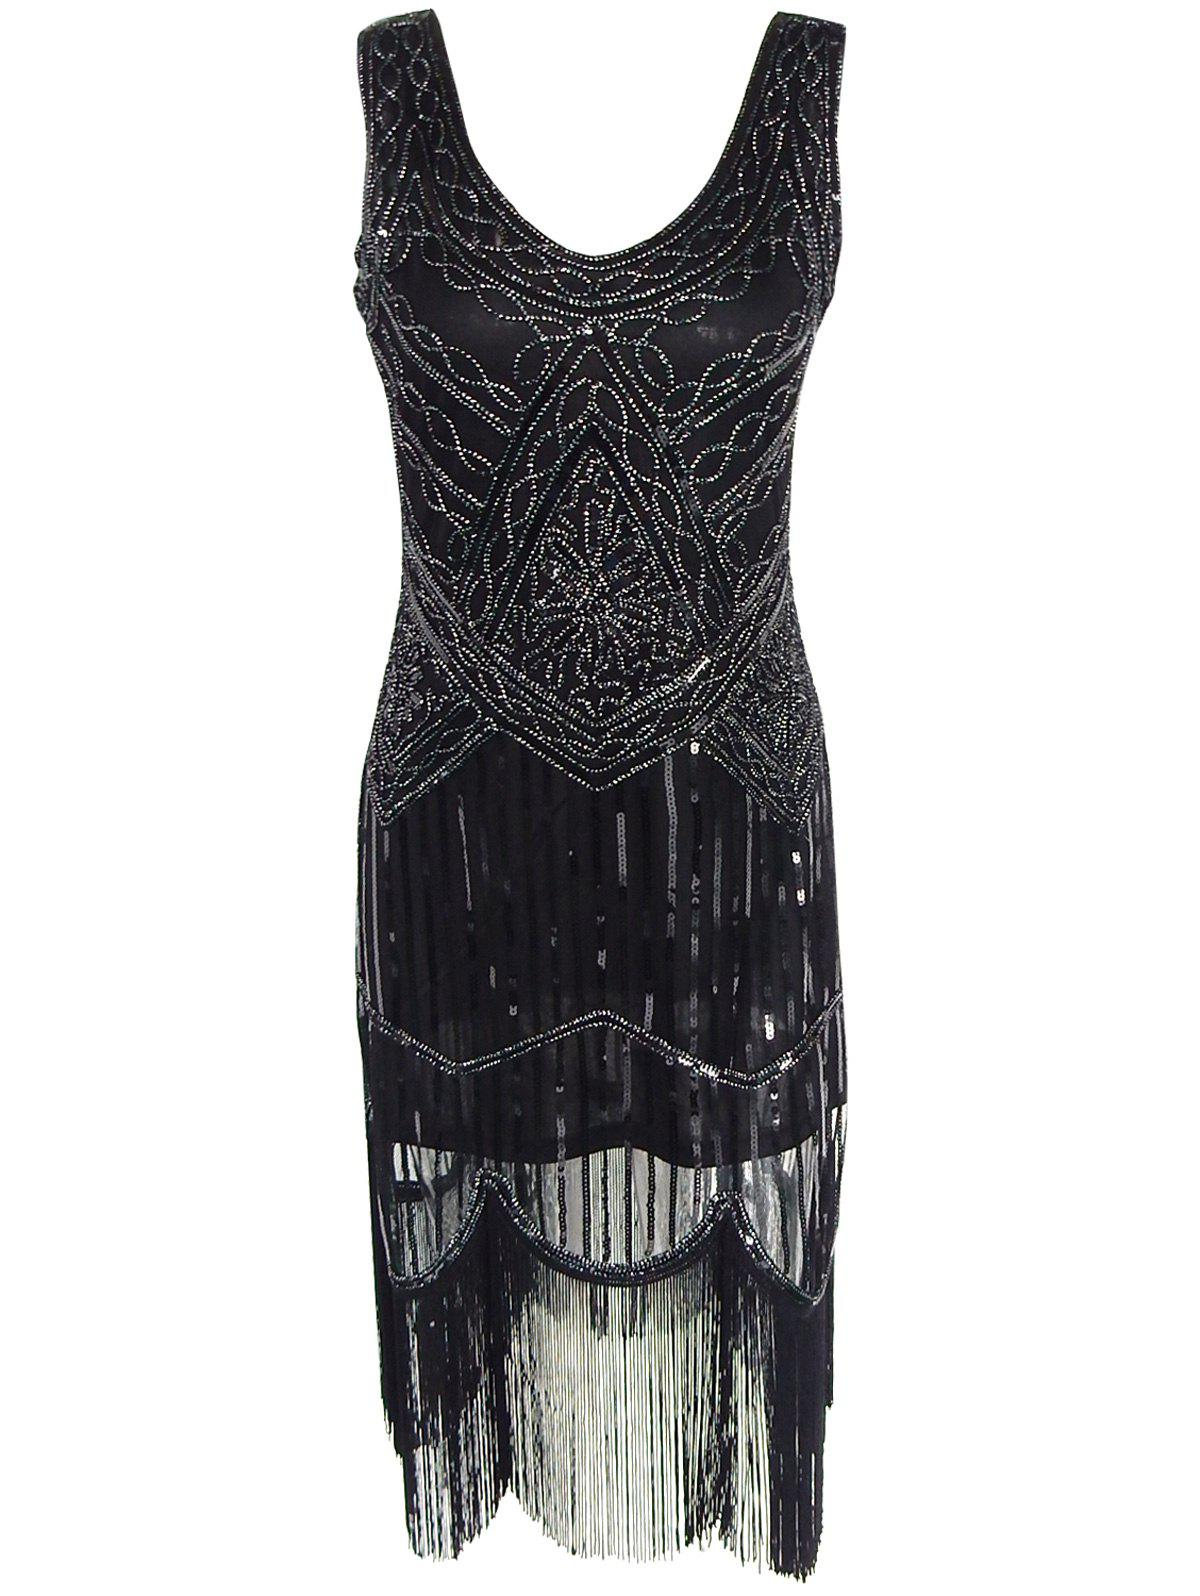 Vintage Beaded Fringed Sequin Flapper DressWOMEN<br><br>Size: S; Color: BLACK; Style: Sexy &amp; Club; Material: Polyester,Spandex,Viscose; Silhouette: Straight; Dresses Length: Knee-Length; Neckline: Scoop Neck; Sleeve Length: Sleeveless; Pattern Type: Others; With Belt: No; Season: Summer; Weight: 0.3580kg; Package Contents: 1 x Dress;